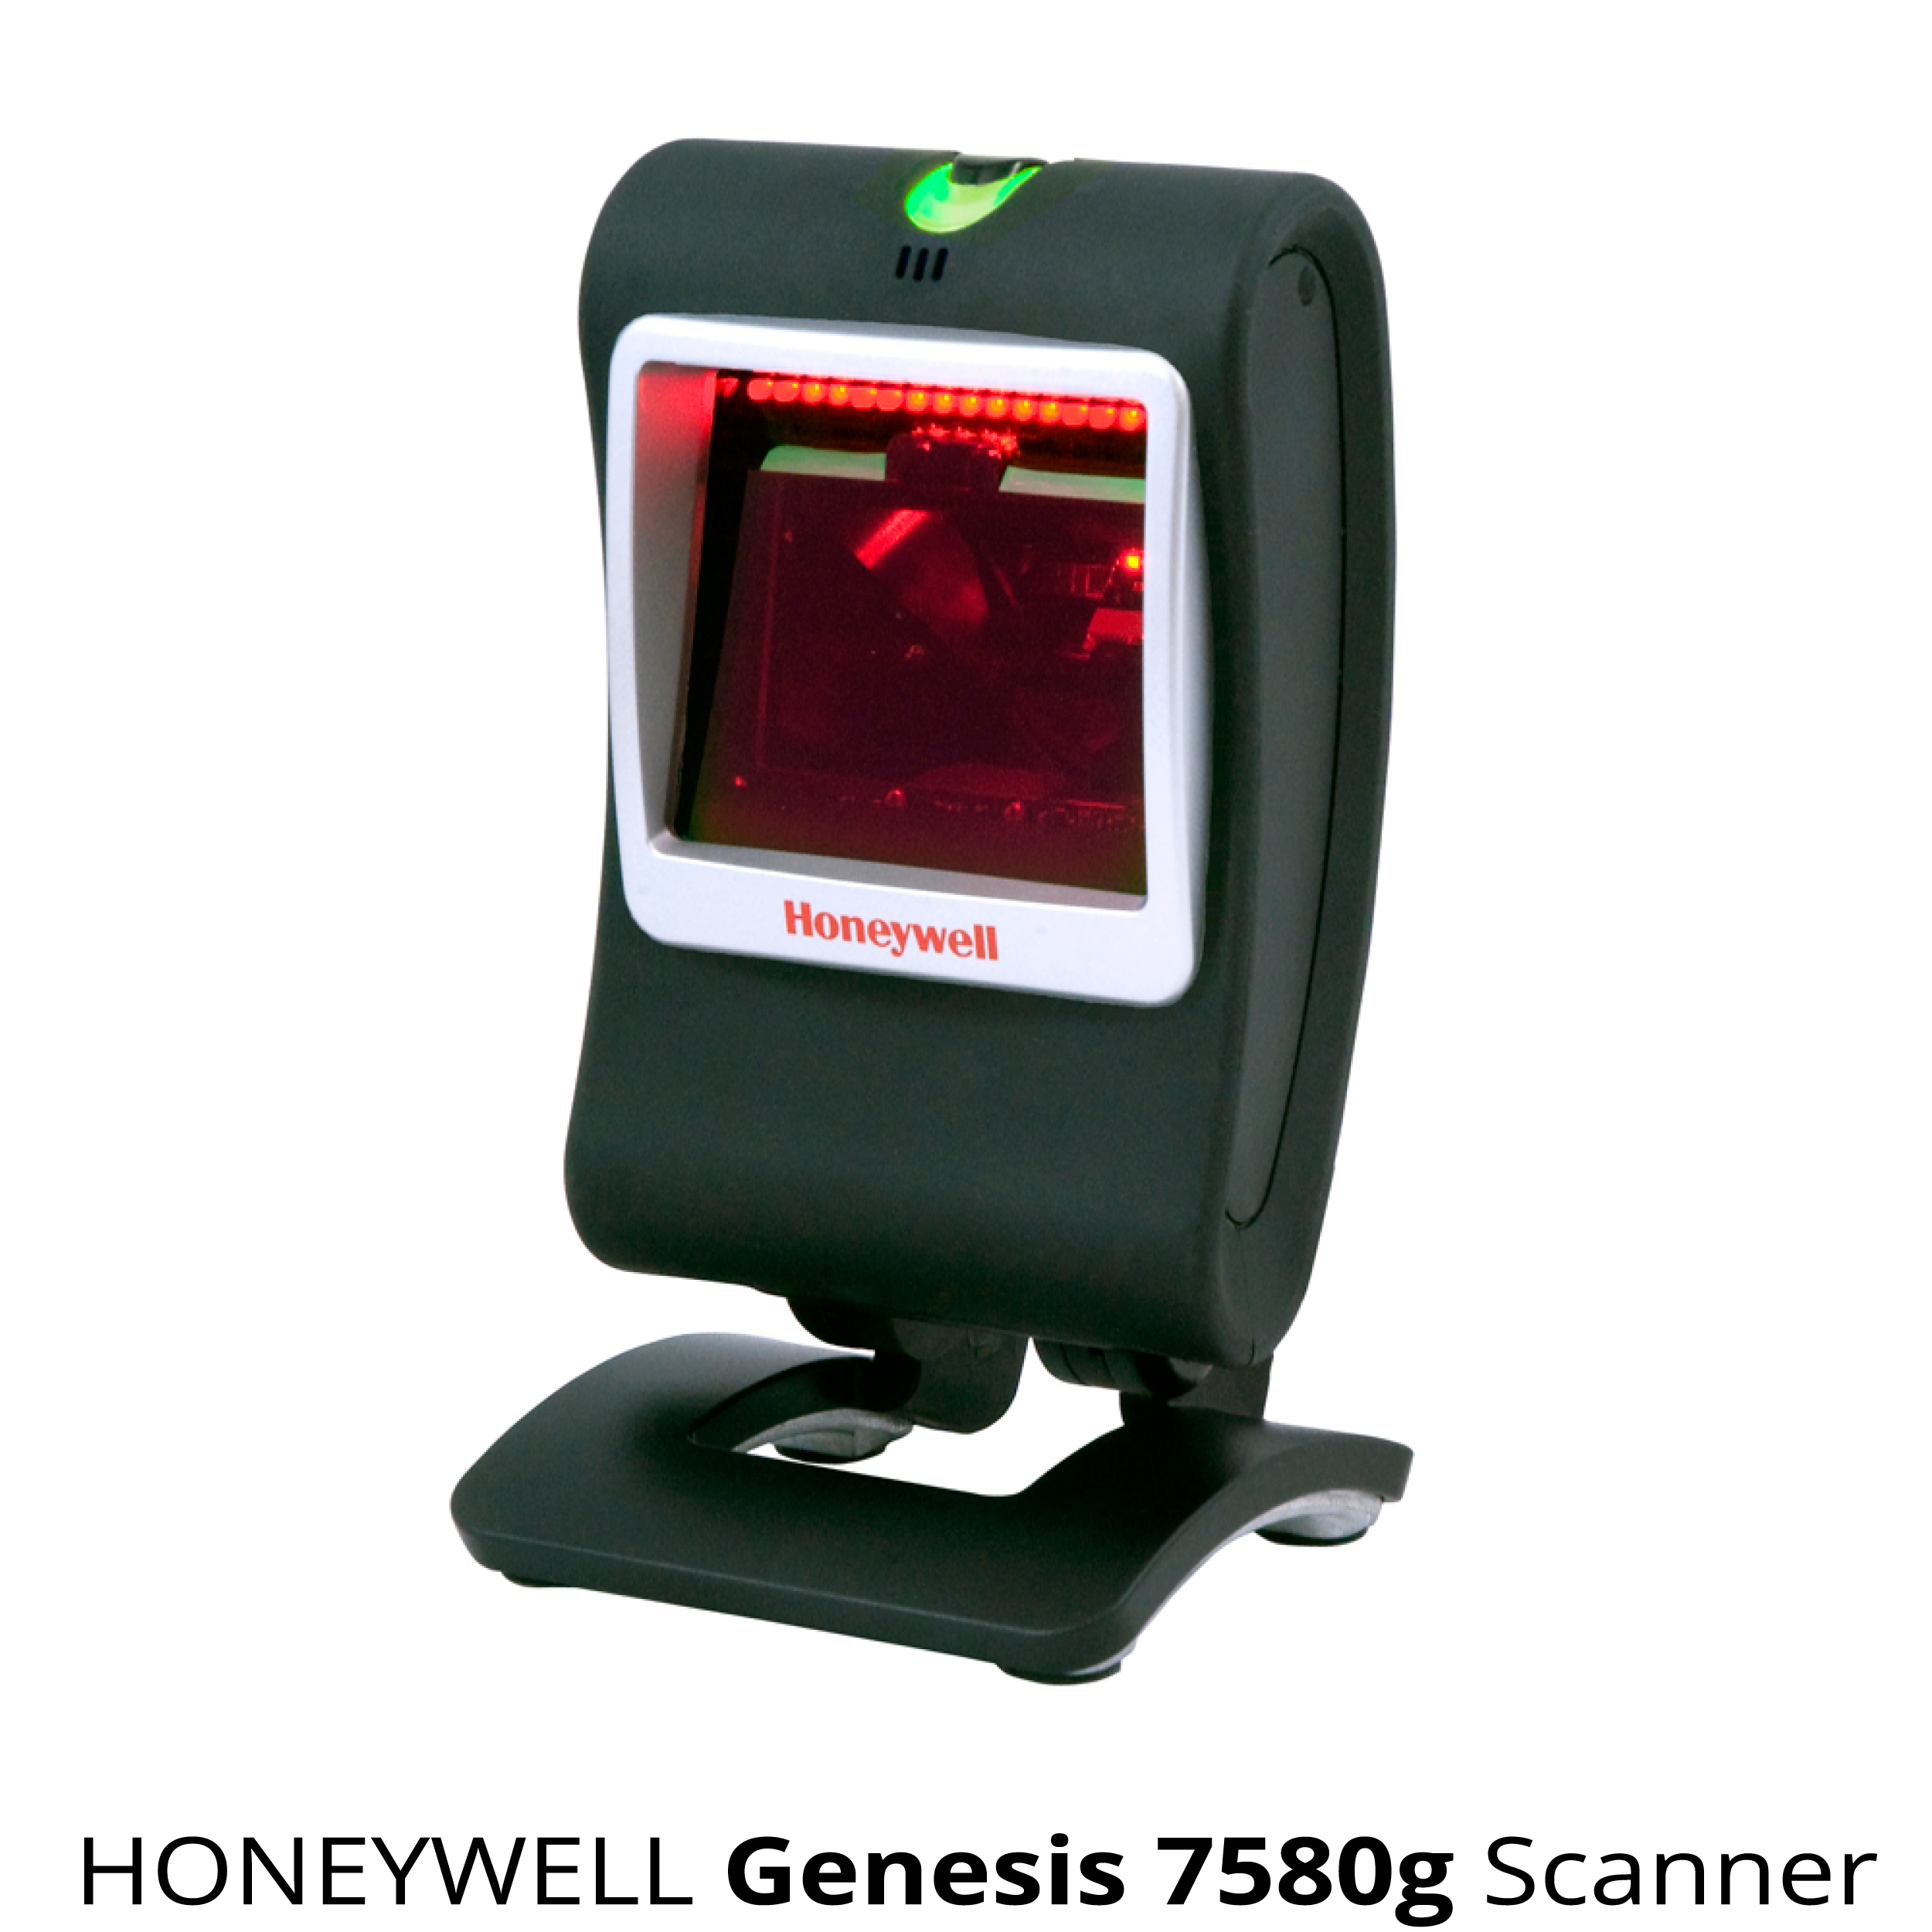 Honeywell Genesis 7580g Area-Imaging Scanner